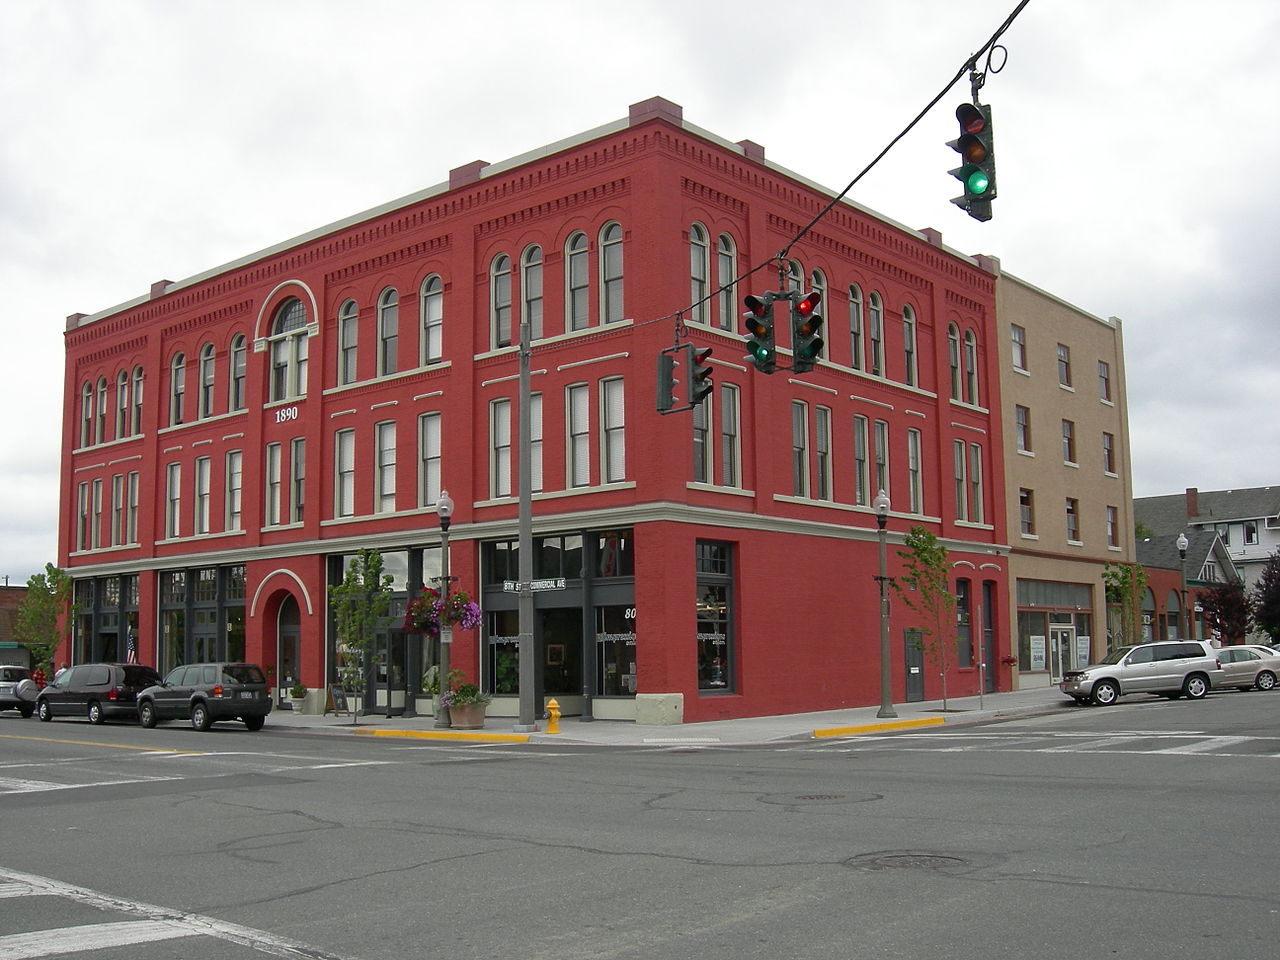 The Former Wilson Hotel has been a landmark in Anacortes since it was built in 1890.